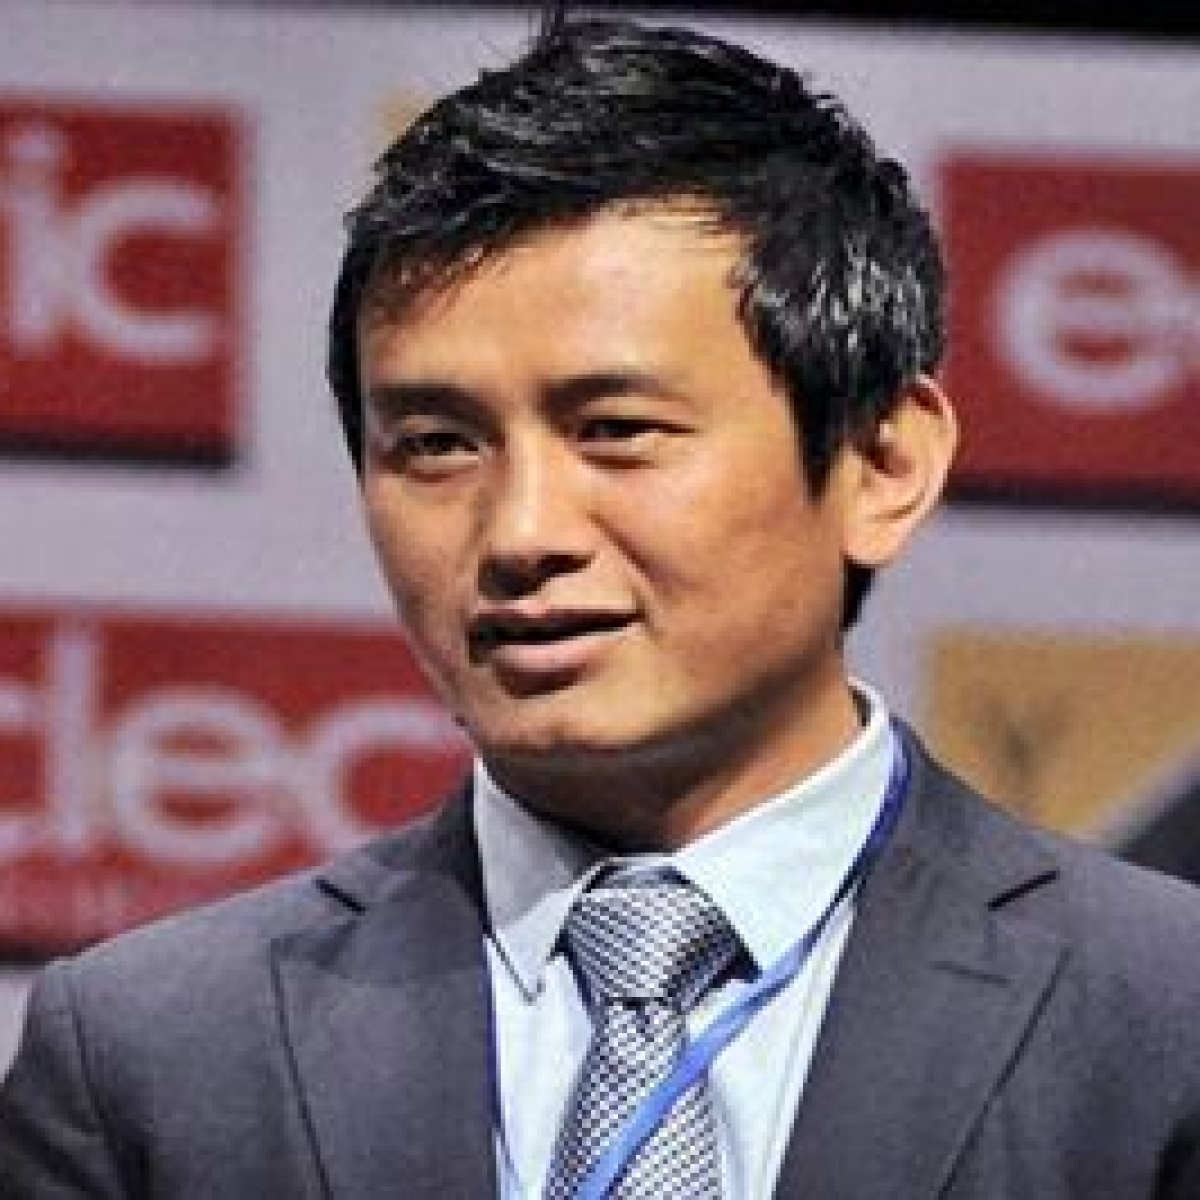 Playing with good players in ISL has made Indian footballers more confident: Bhaichung Bhutia